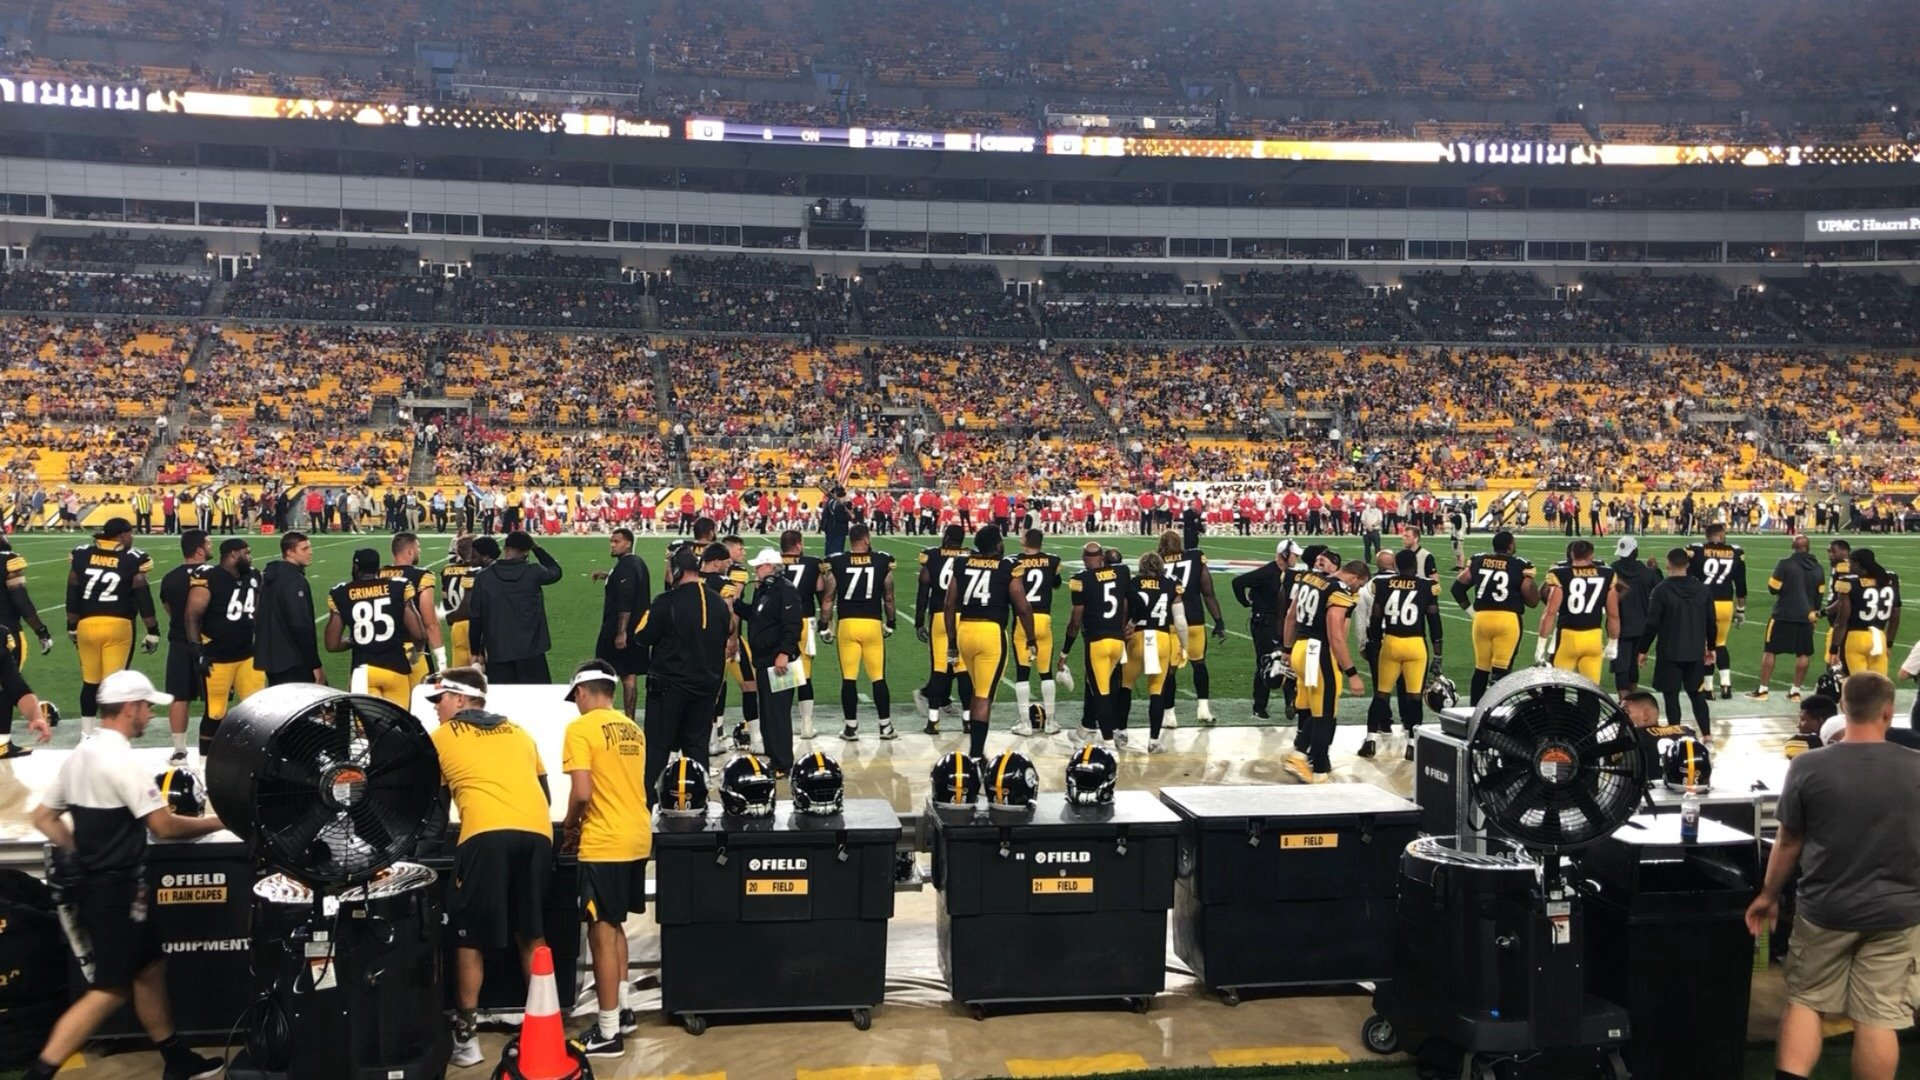 Heinz Field Section 133 Row A Seat 1